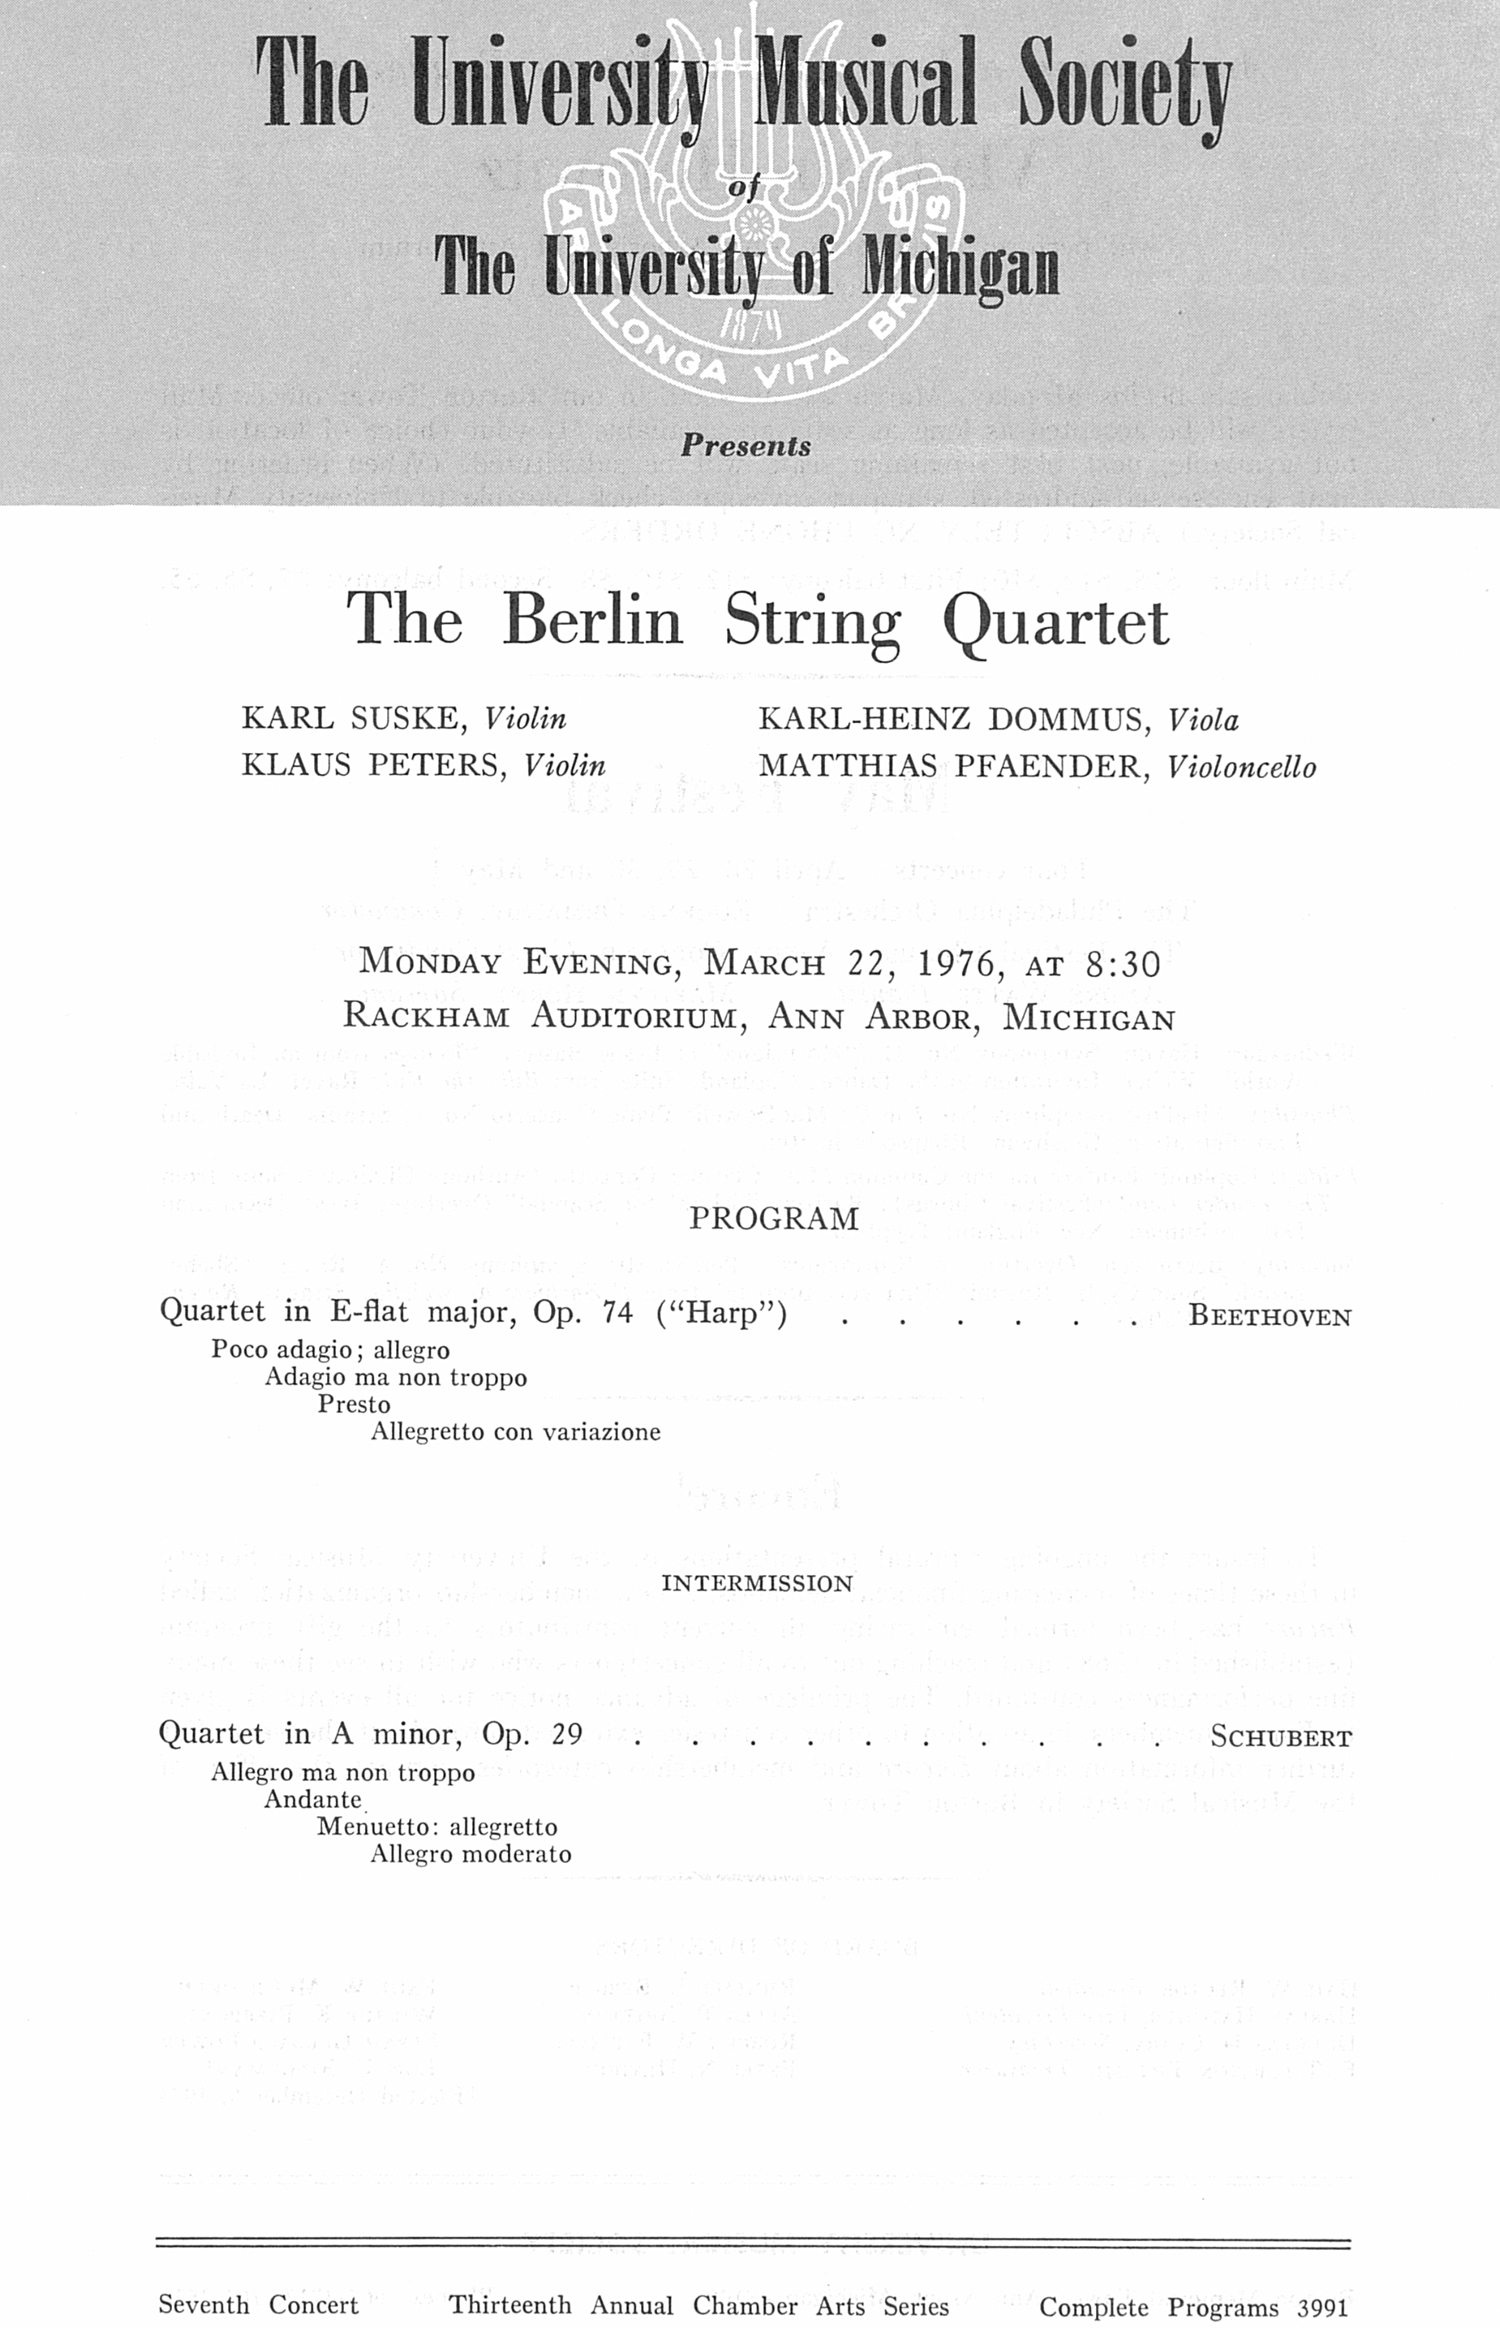 UMS Concert Program, March 22, 1976: The Berlin String Quartet --  image